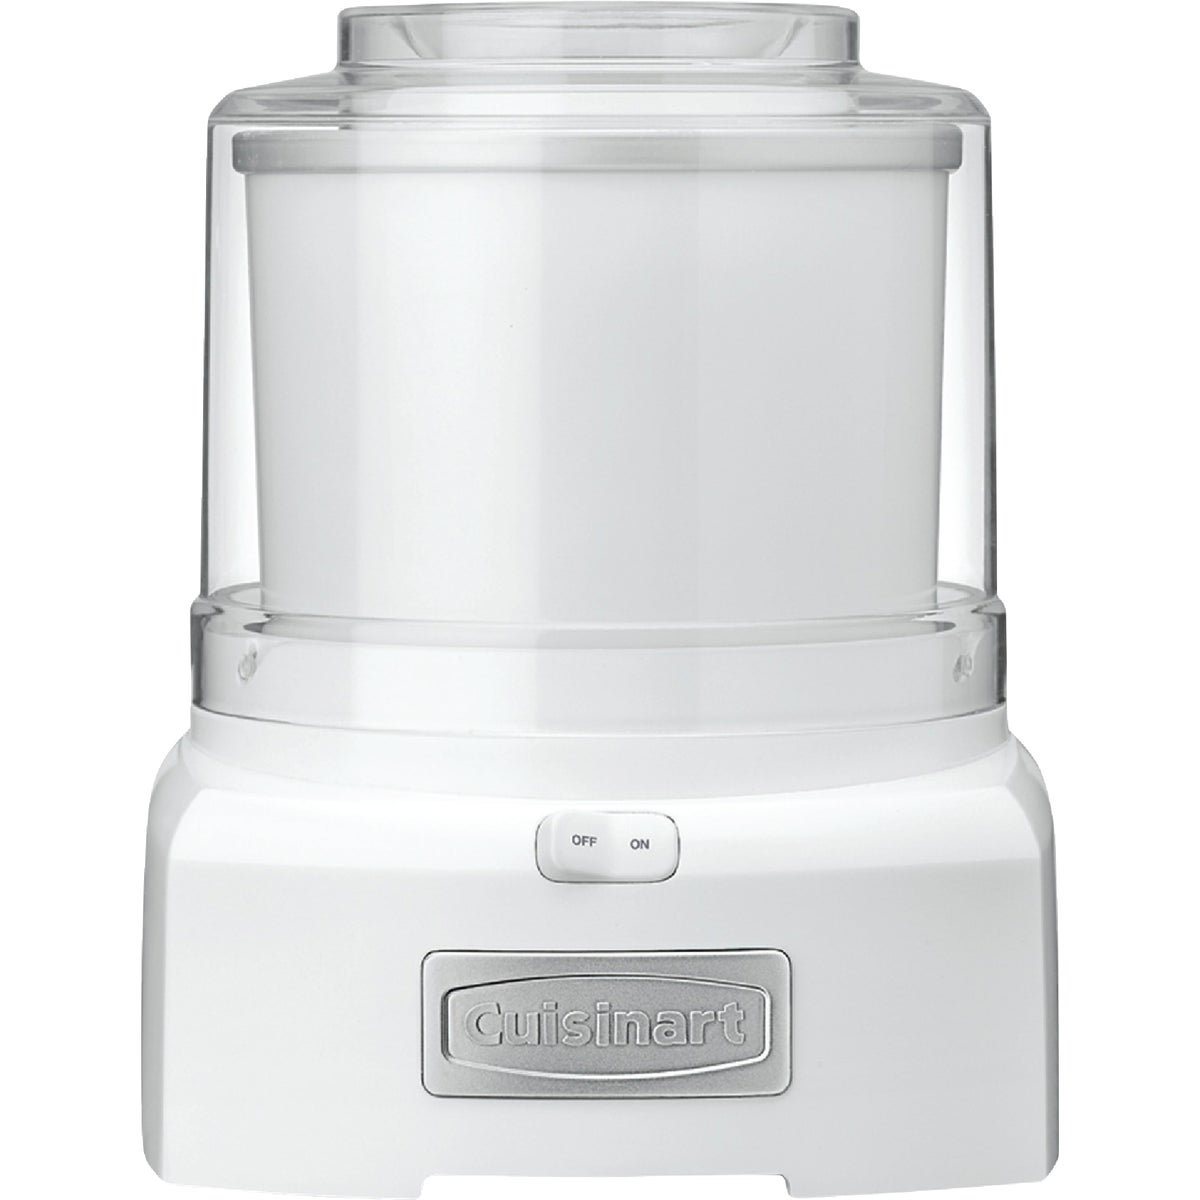 1-1/2QT ICE CREAM MAKER